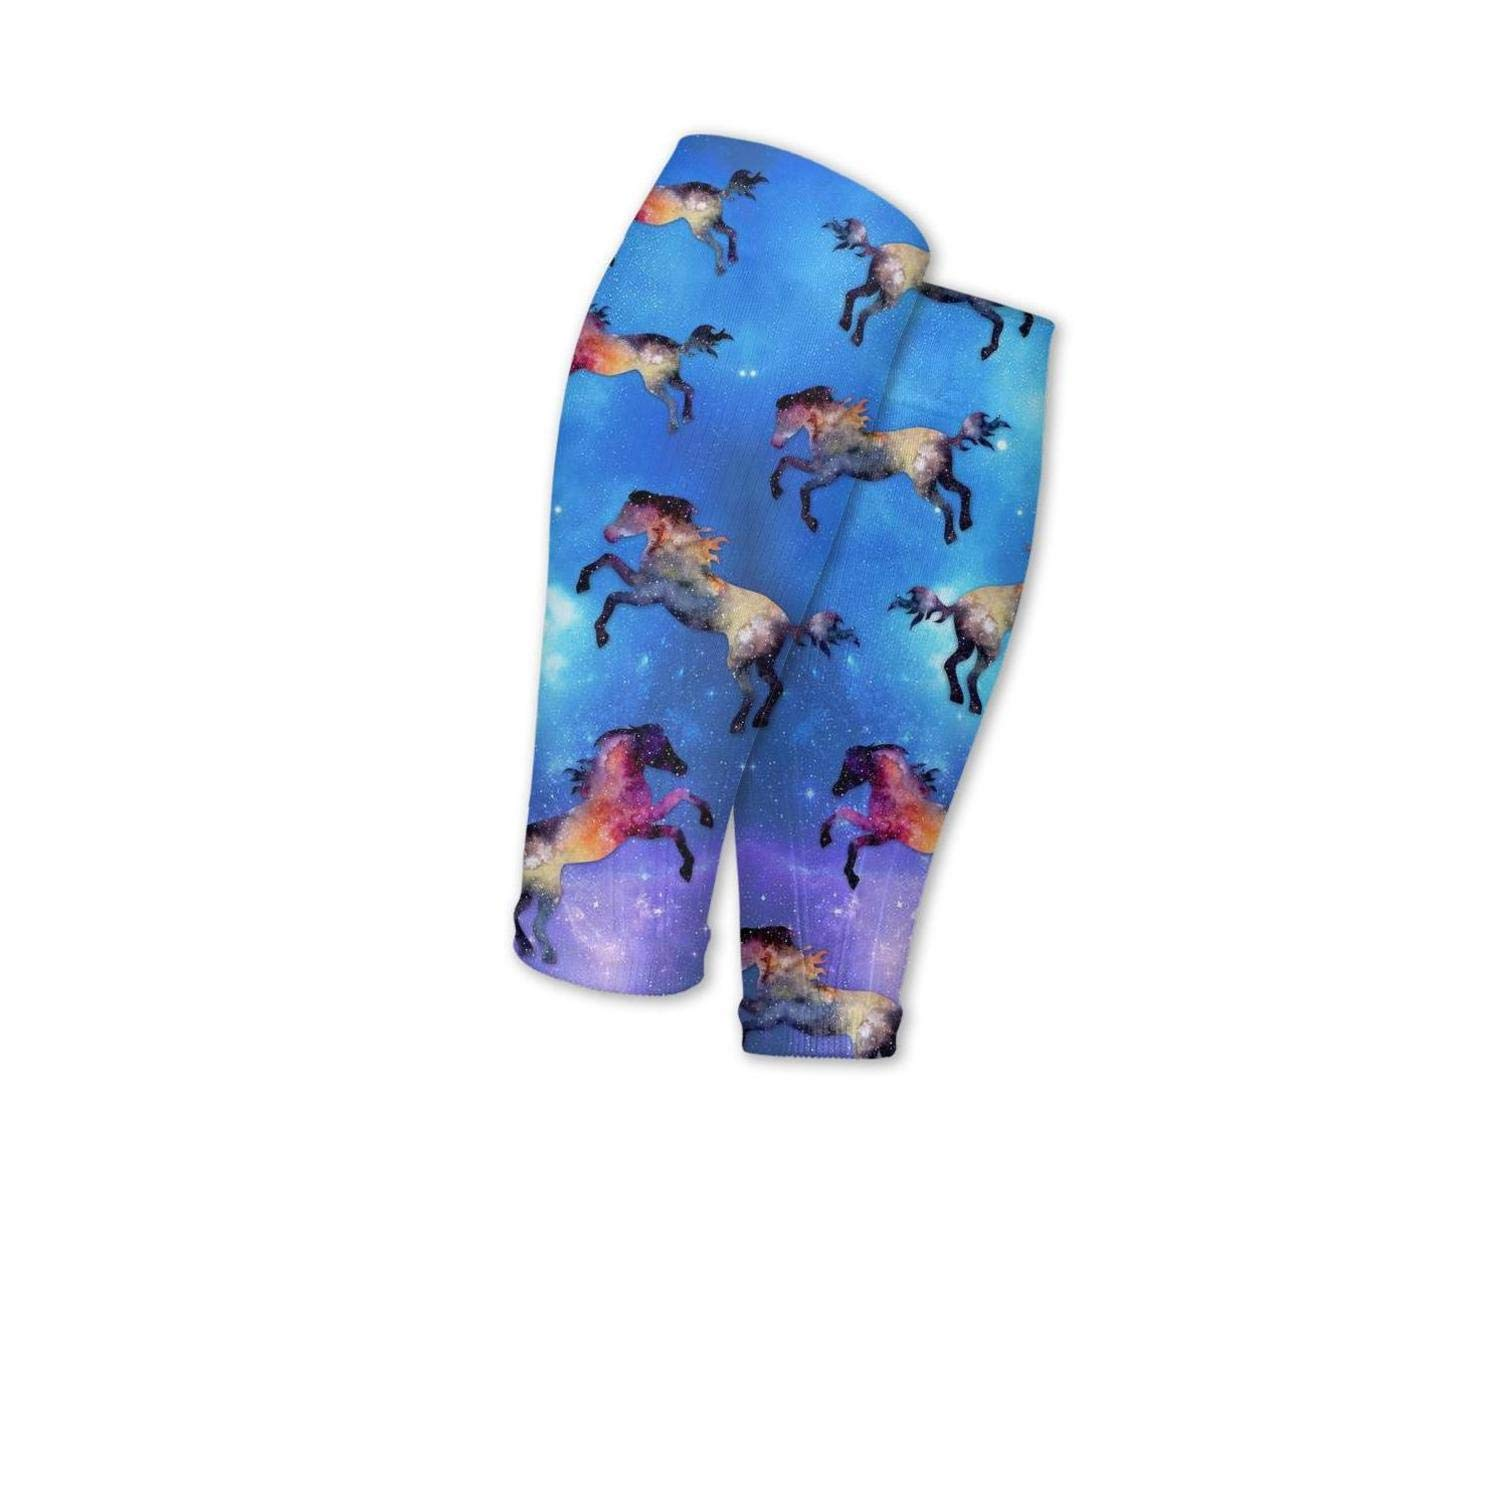 Smilelolly animal horse Calf Compression Sleeves Helps Pain Relief Leg Sleeves for Men Women